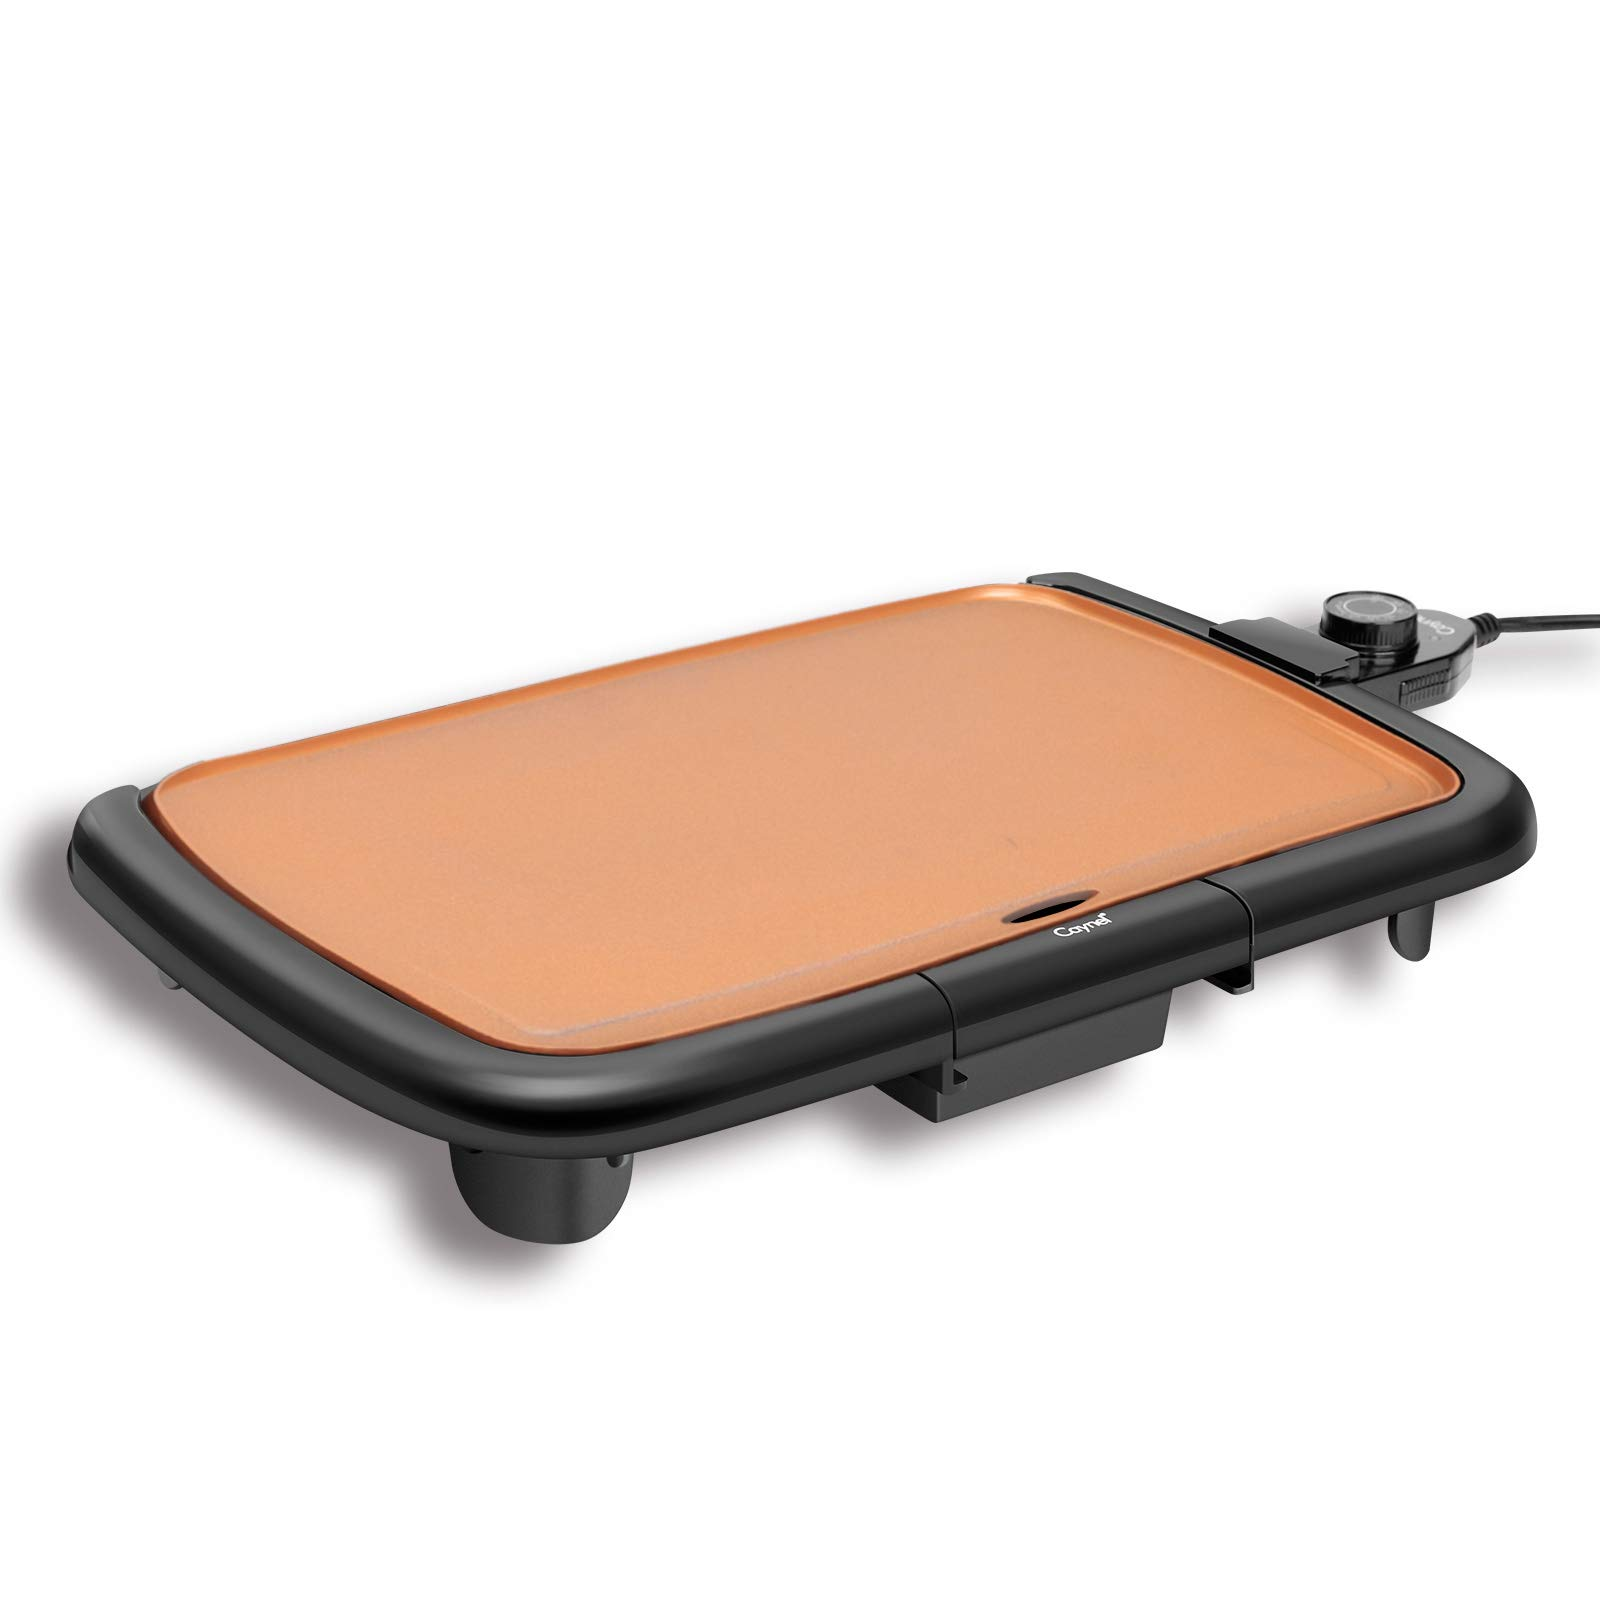 Caynel Professional Electric Griddle, Cool-Touch Griddle, Smoke-less Non-Stick Coating with Removable Drip Tray and Cool-touch Handles, Compact Storage, Upgrade Thermostat for Indoor/Outdoor, Fully immersible Easy Cleaning, 16''x10'' Family-Sized, Copper